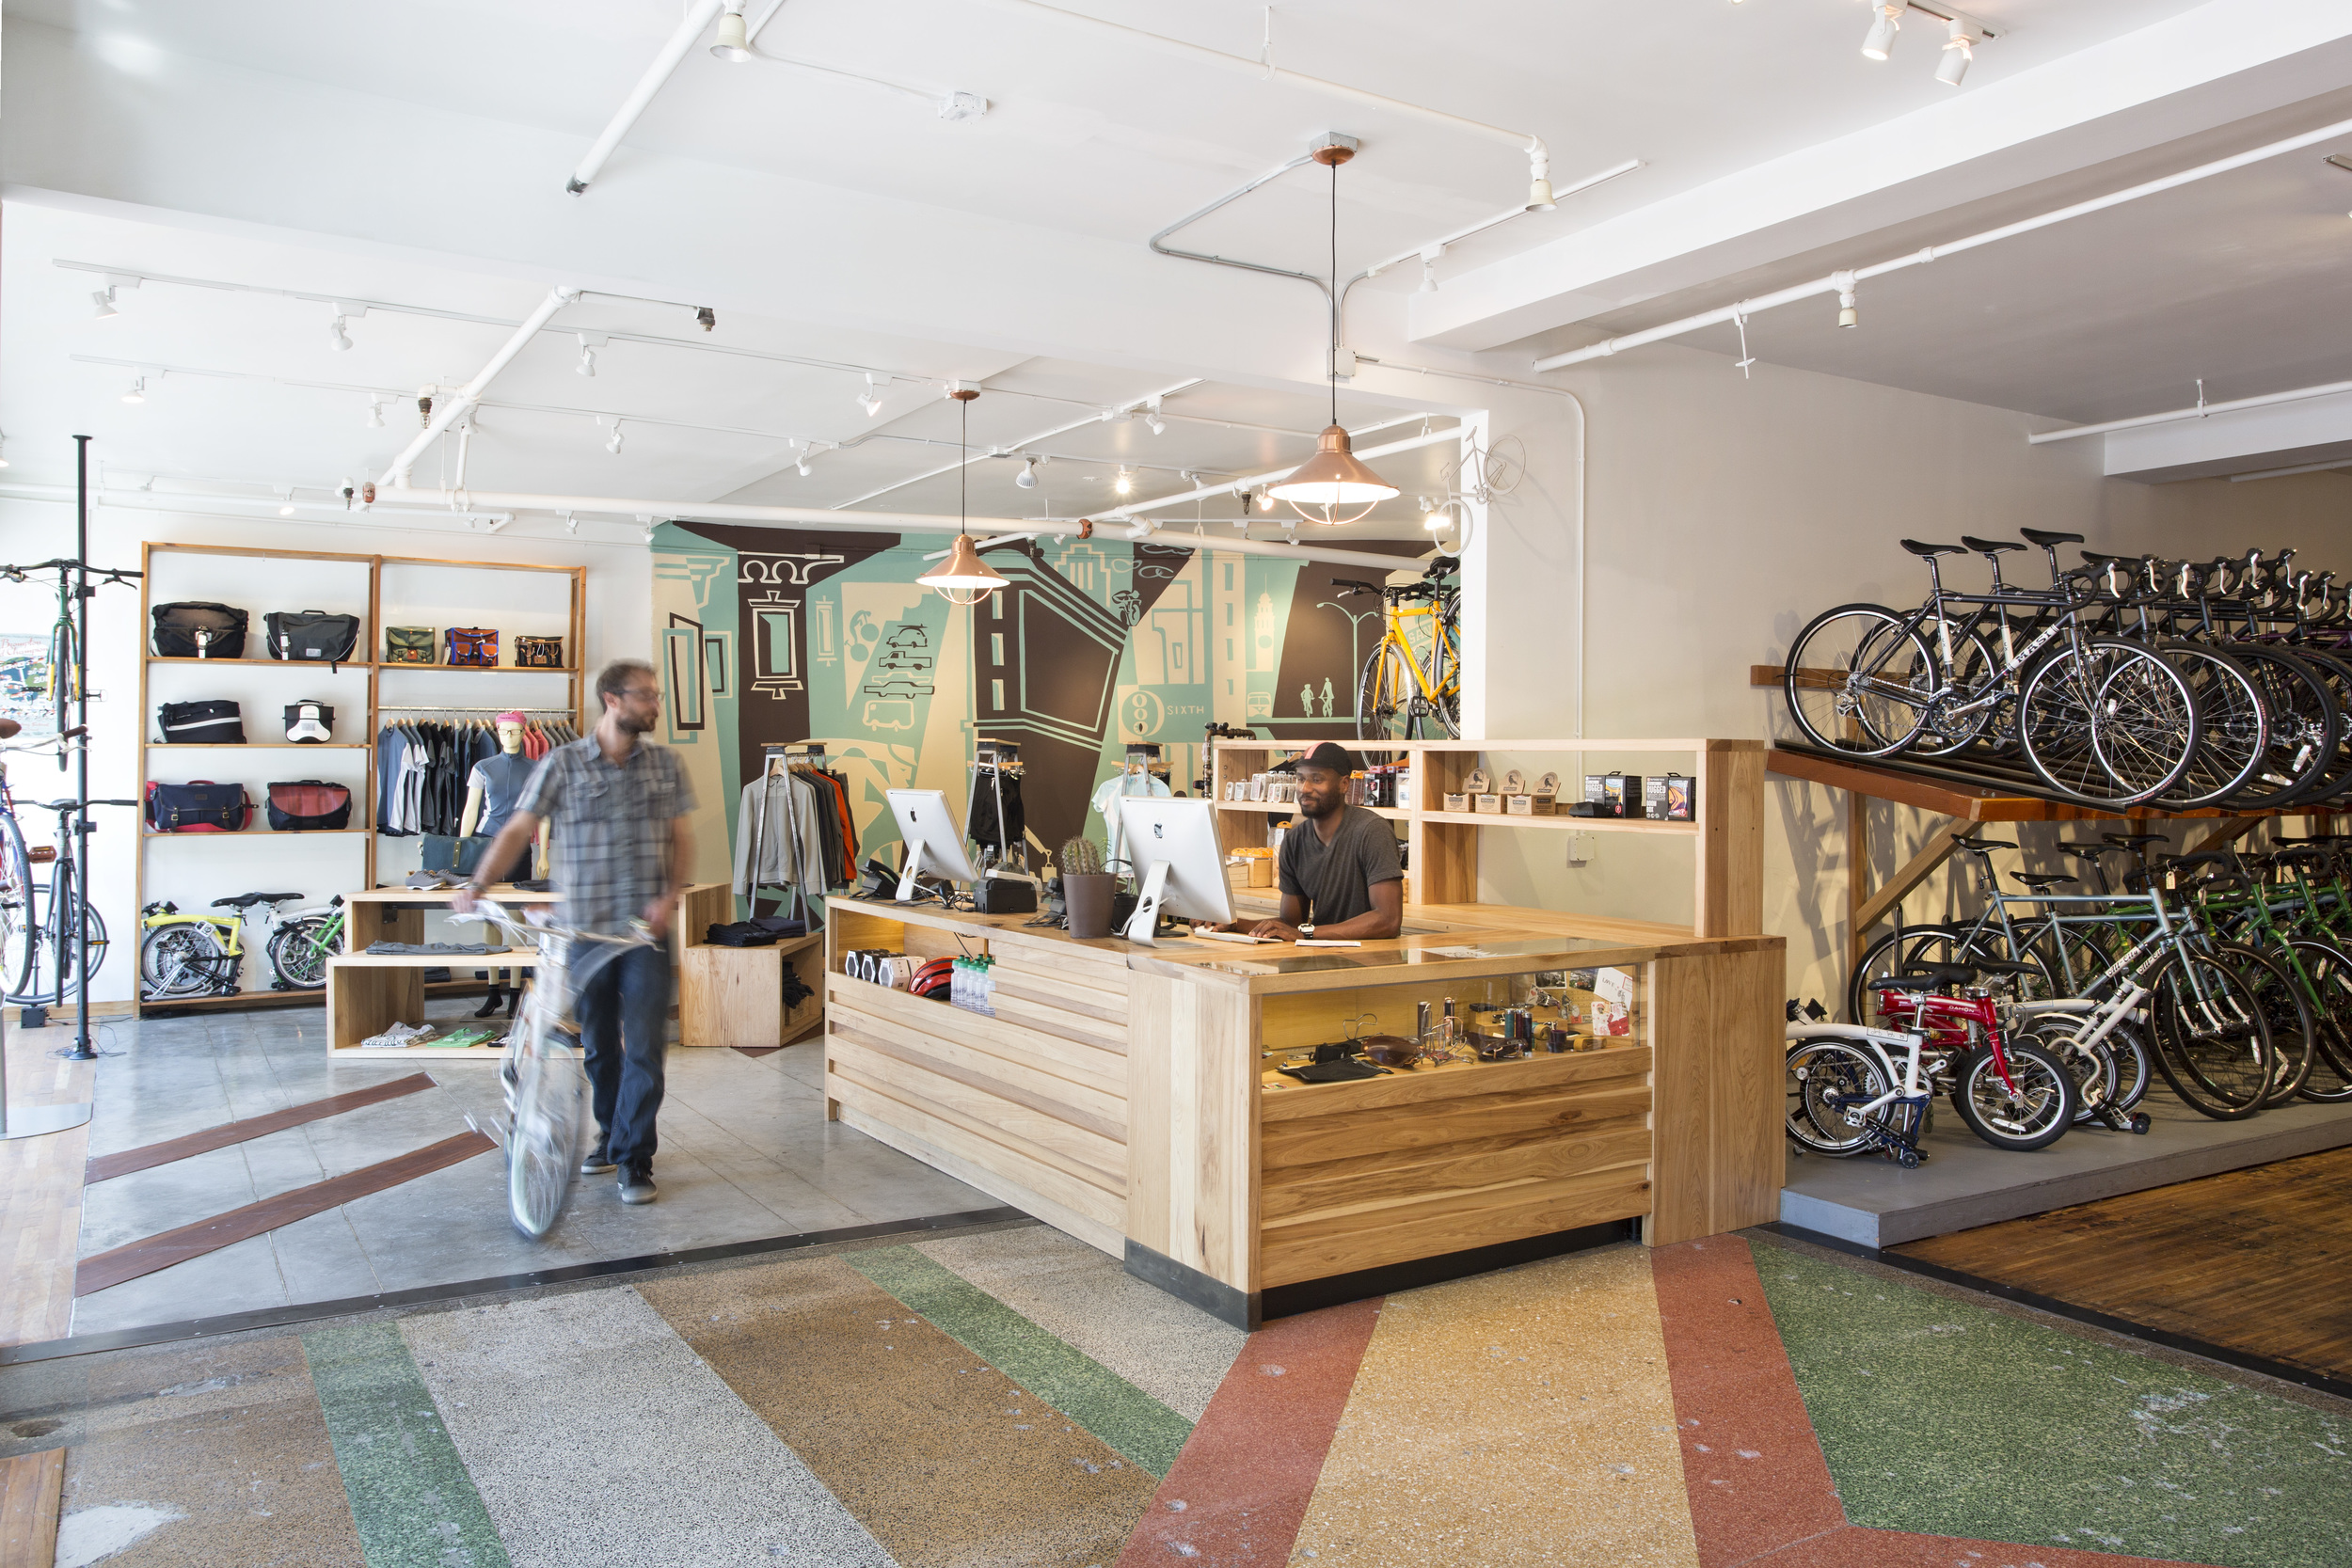 One year after opening, the store expanded into a third tenant space next door, doubling their street presence.